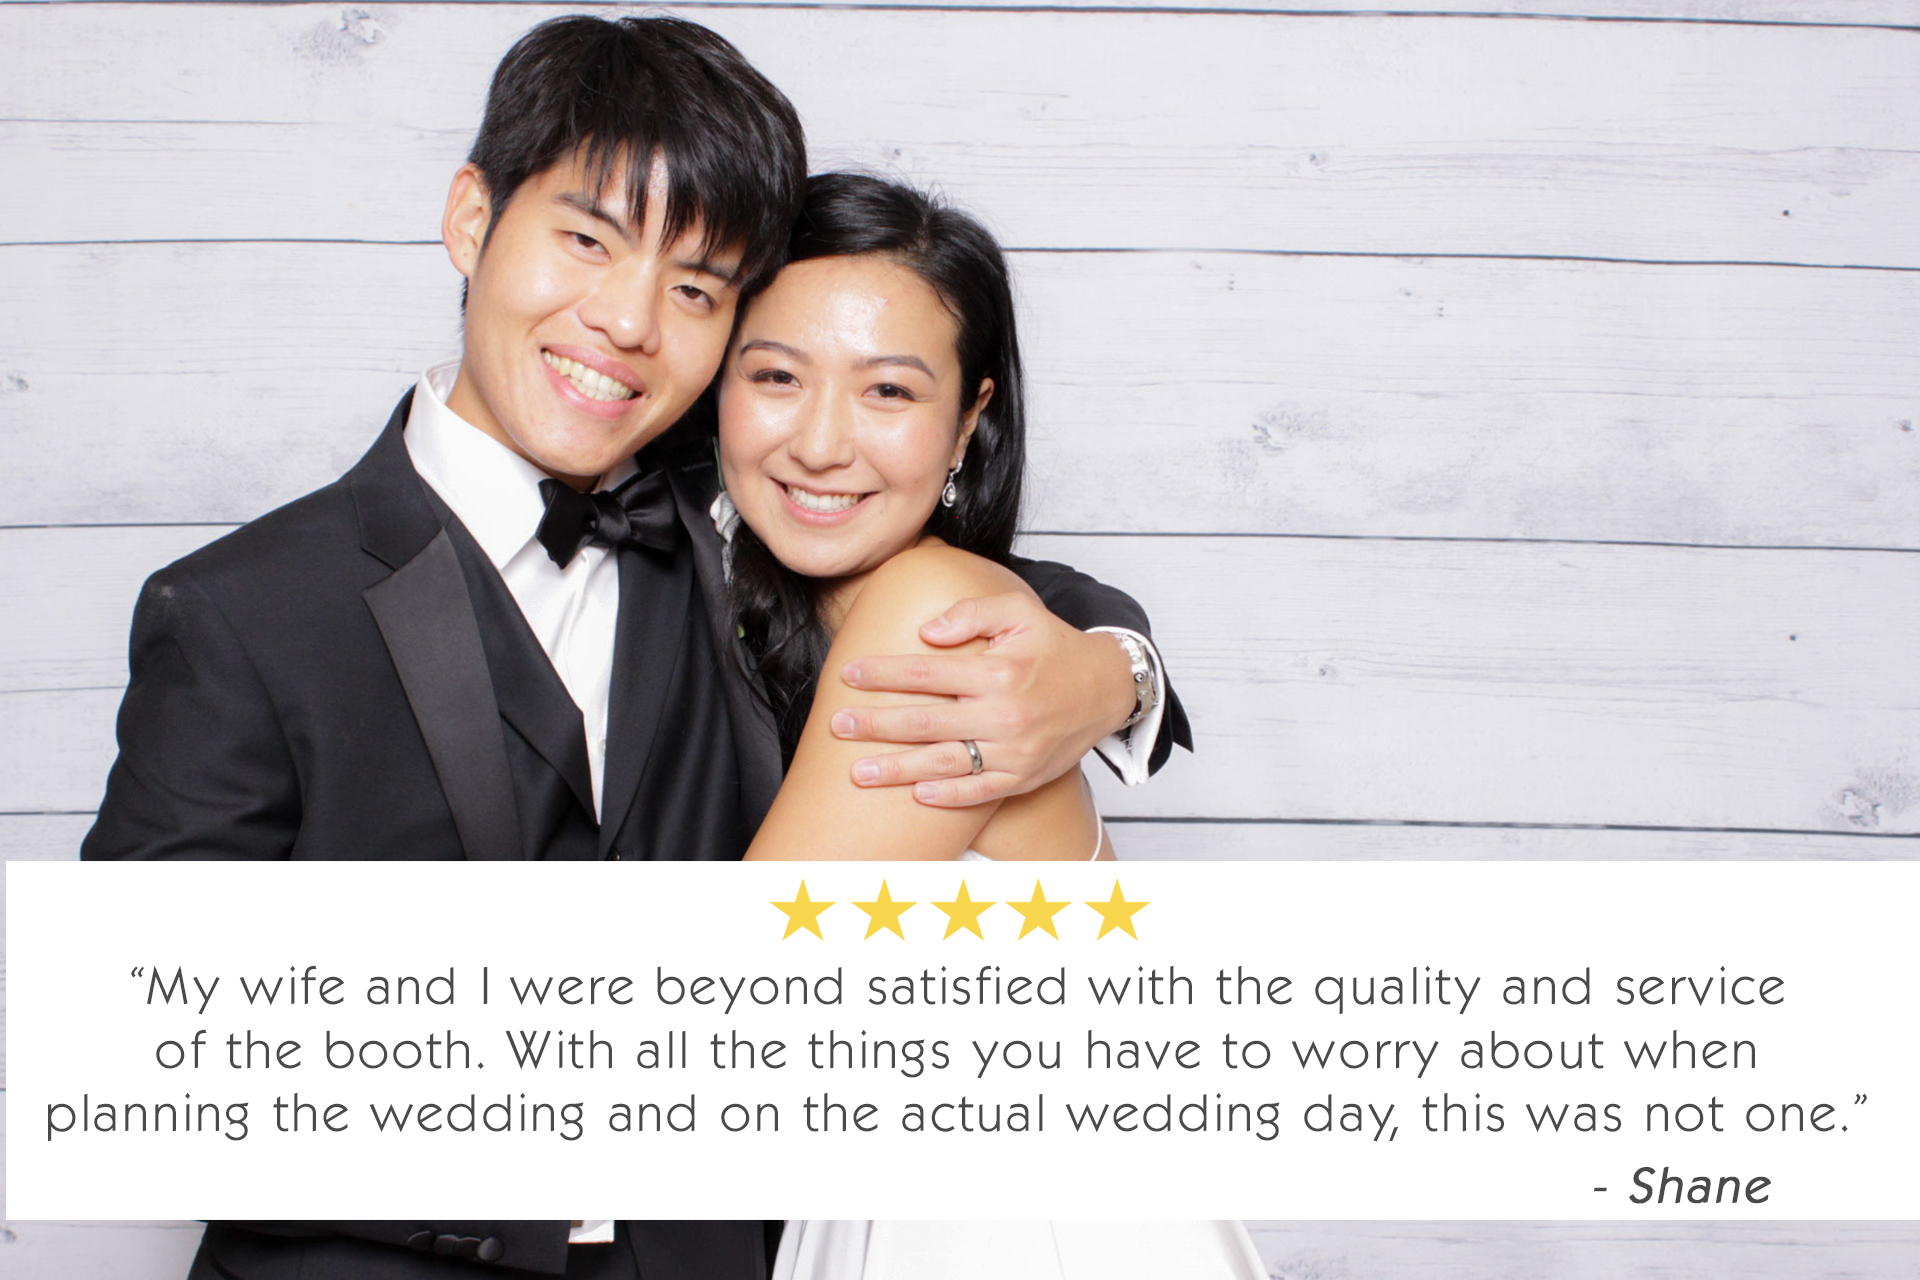 photo booth reviews party photo booth and wedding vendor services for honolulu oahu hawaii waikiki pearl city and kapolei